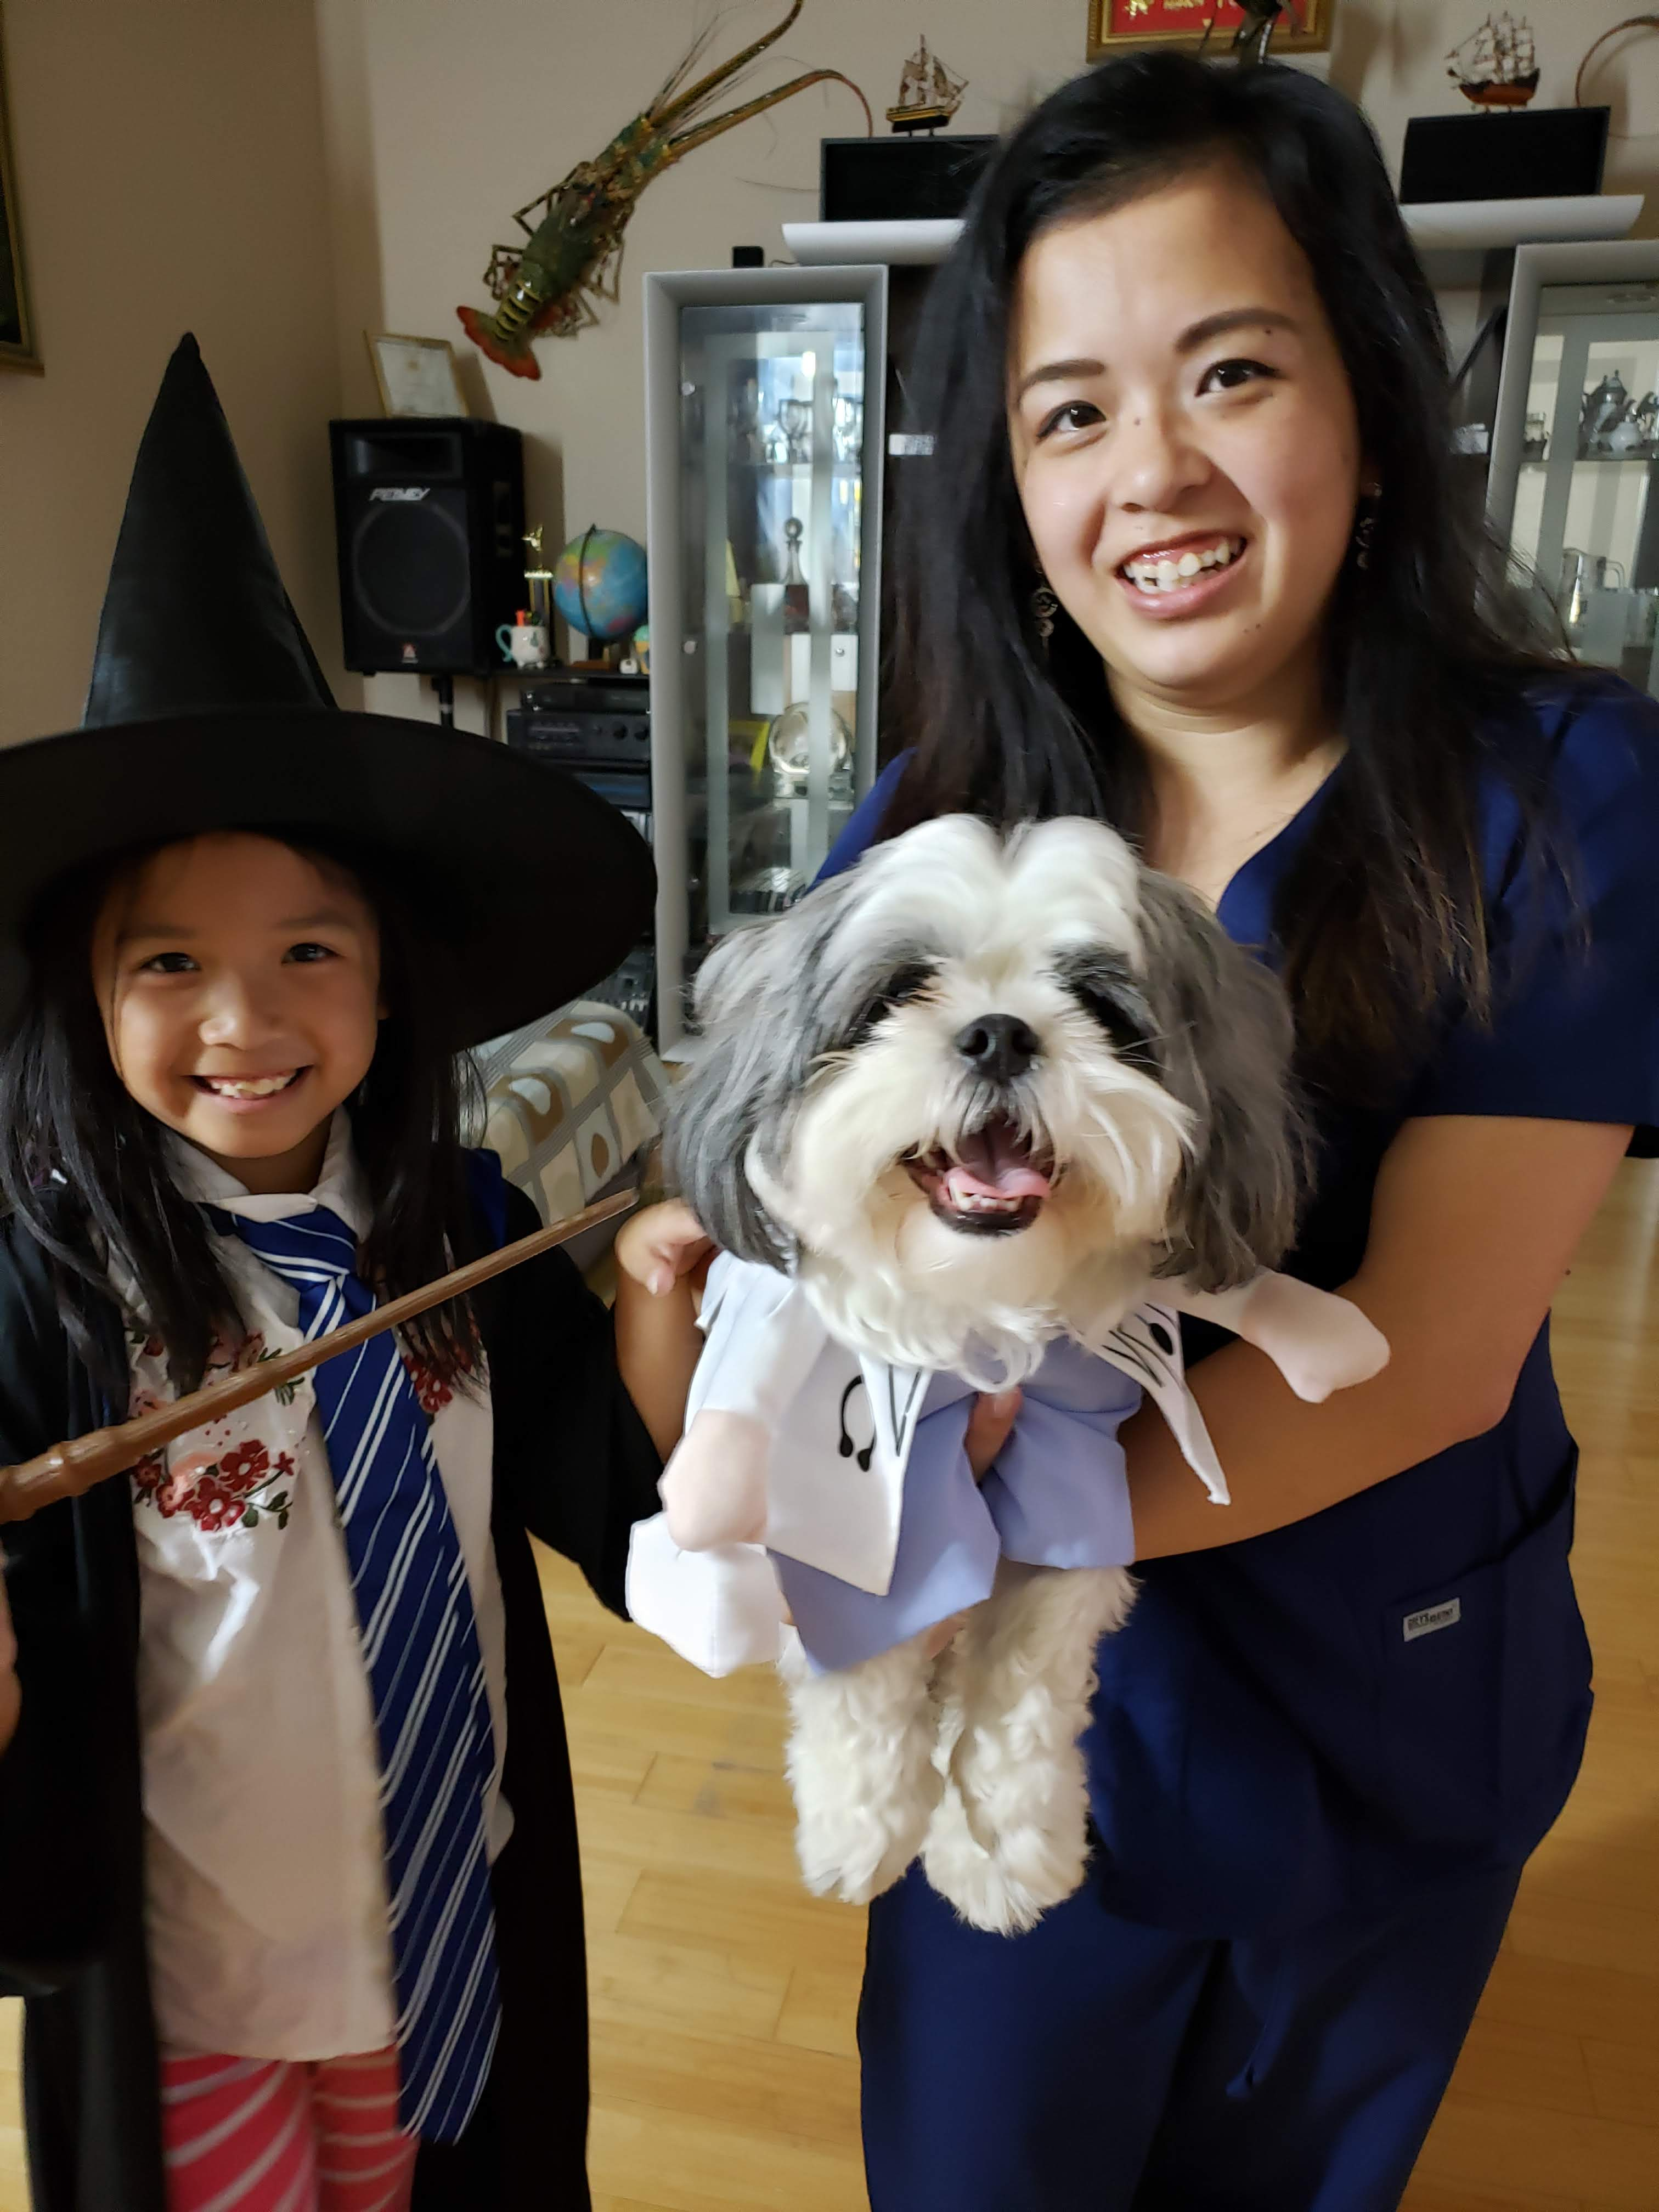 Here is a photo of Damian, my dog, from Halloween last year. We dressed him up as a dog-tor, and I matched with him as a nurse. Kimmy matched us in color, as she went as a Ravenclaw.